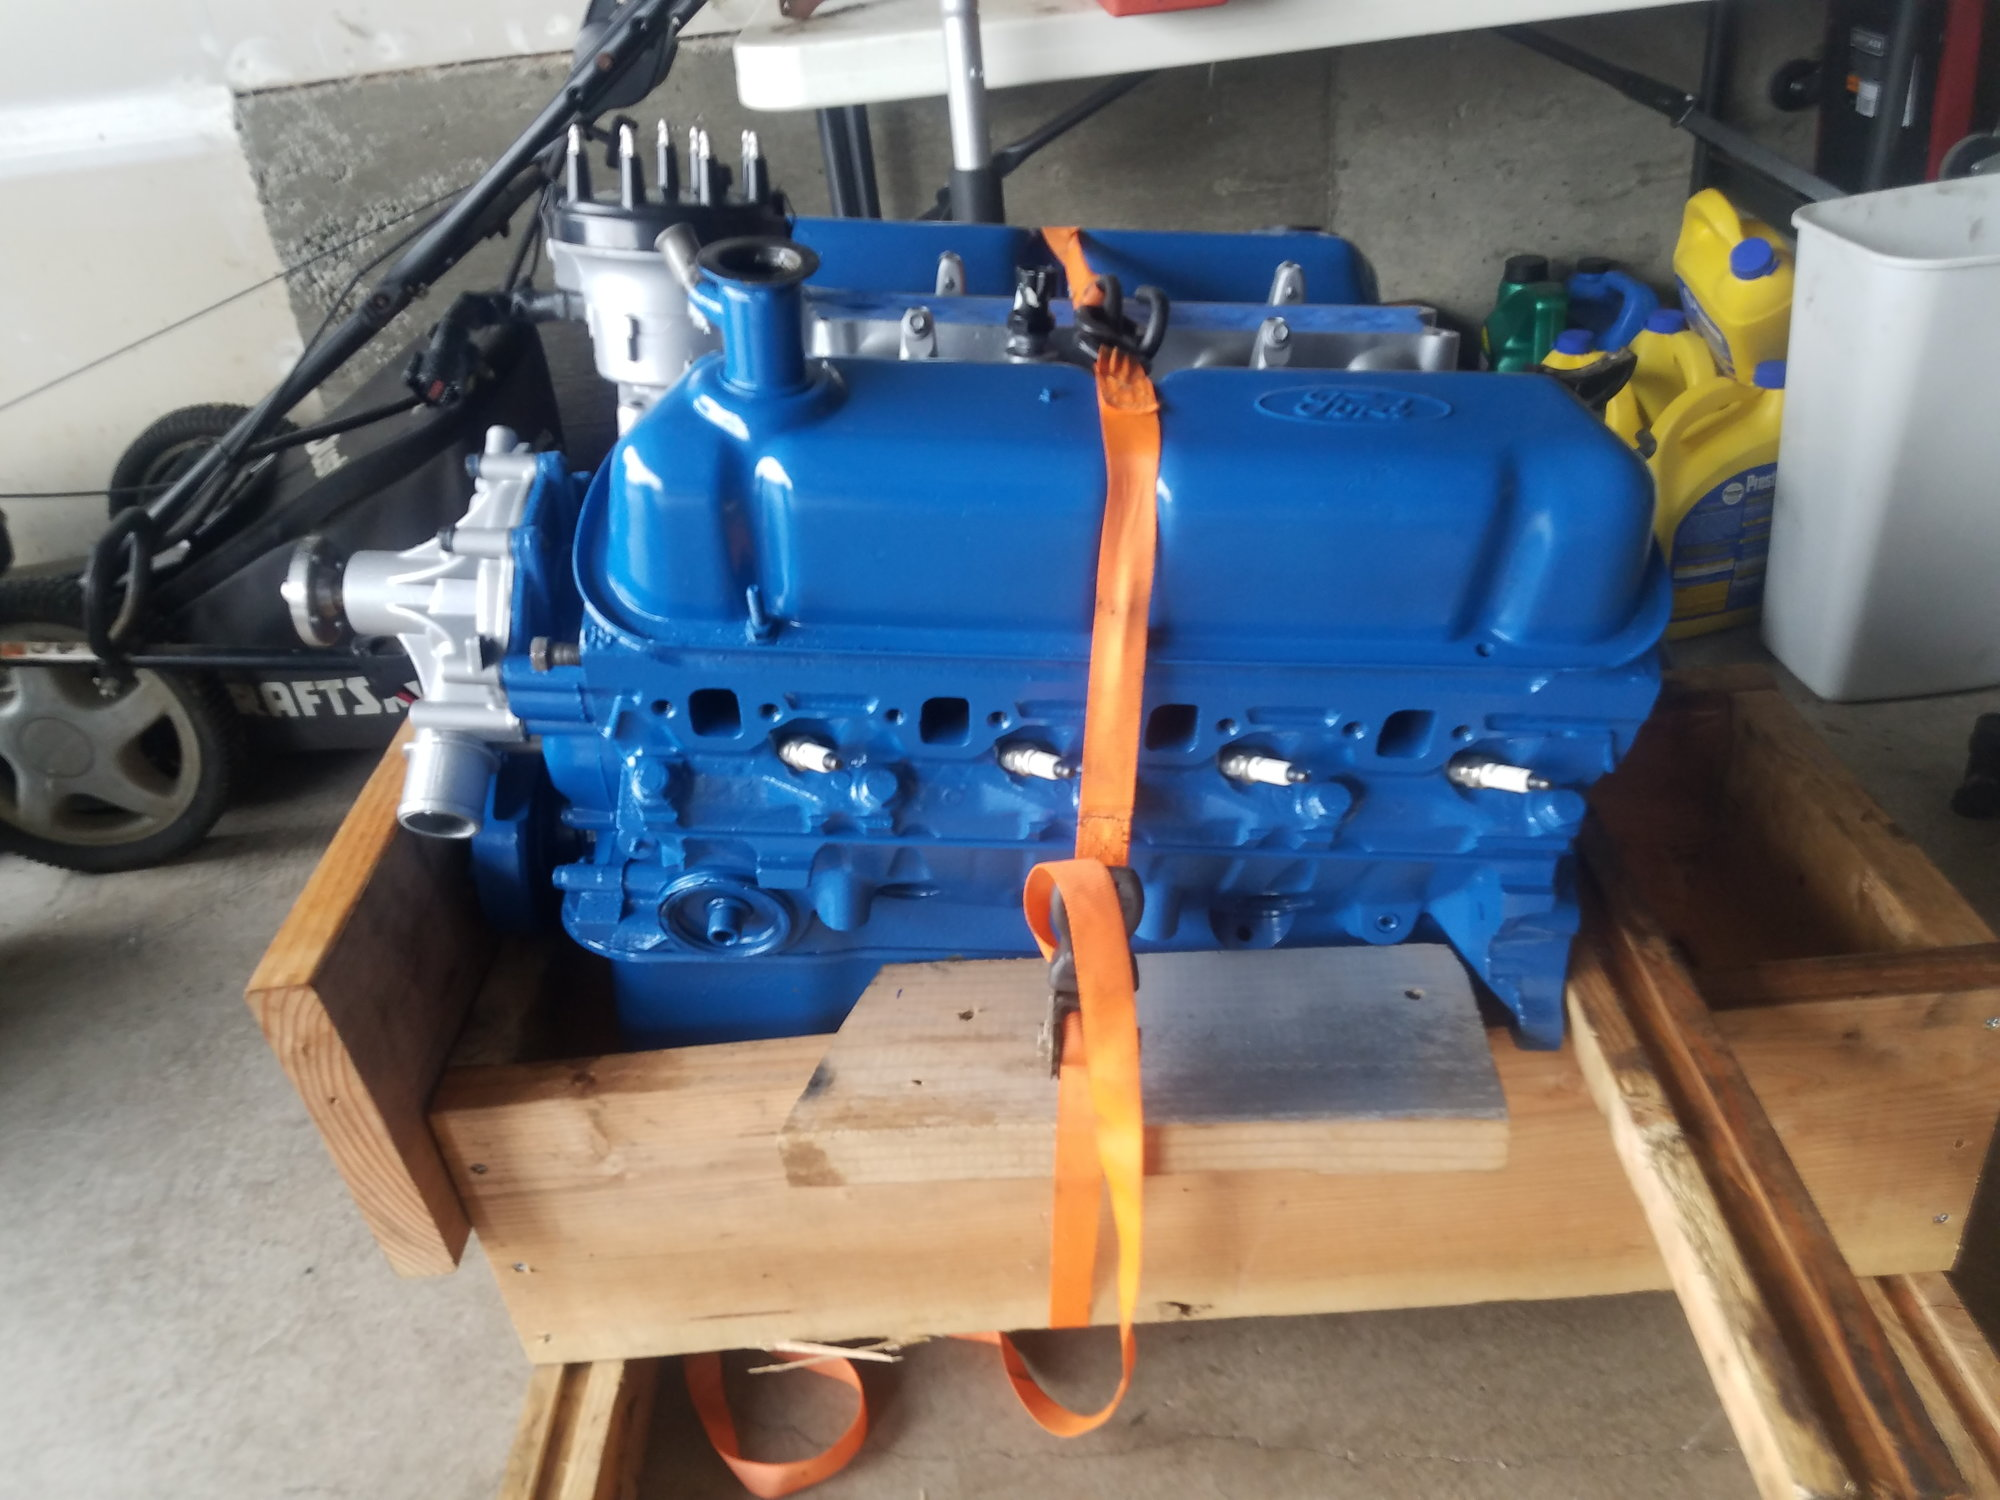 hight resolution of bored over 02 hypereutectic pistons heads have been redone with new valves and a 3 angle valve job came out of a 97 f250 and hasn t been run since